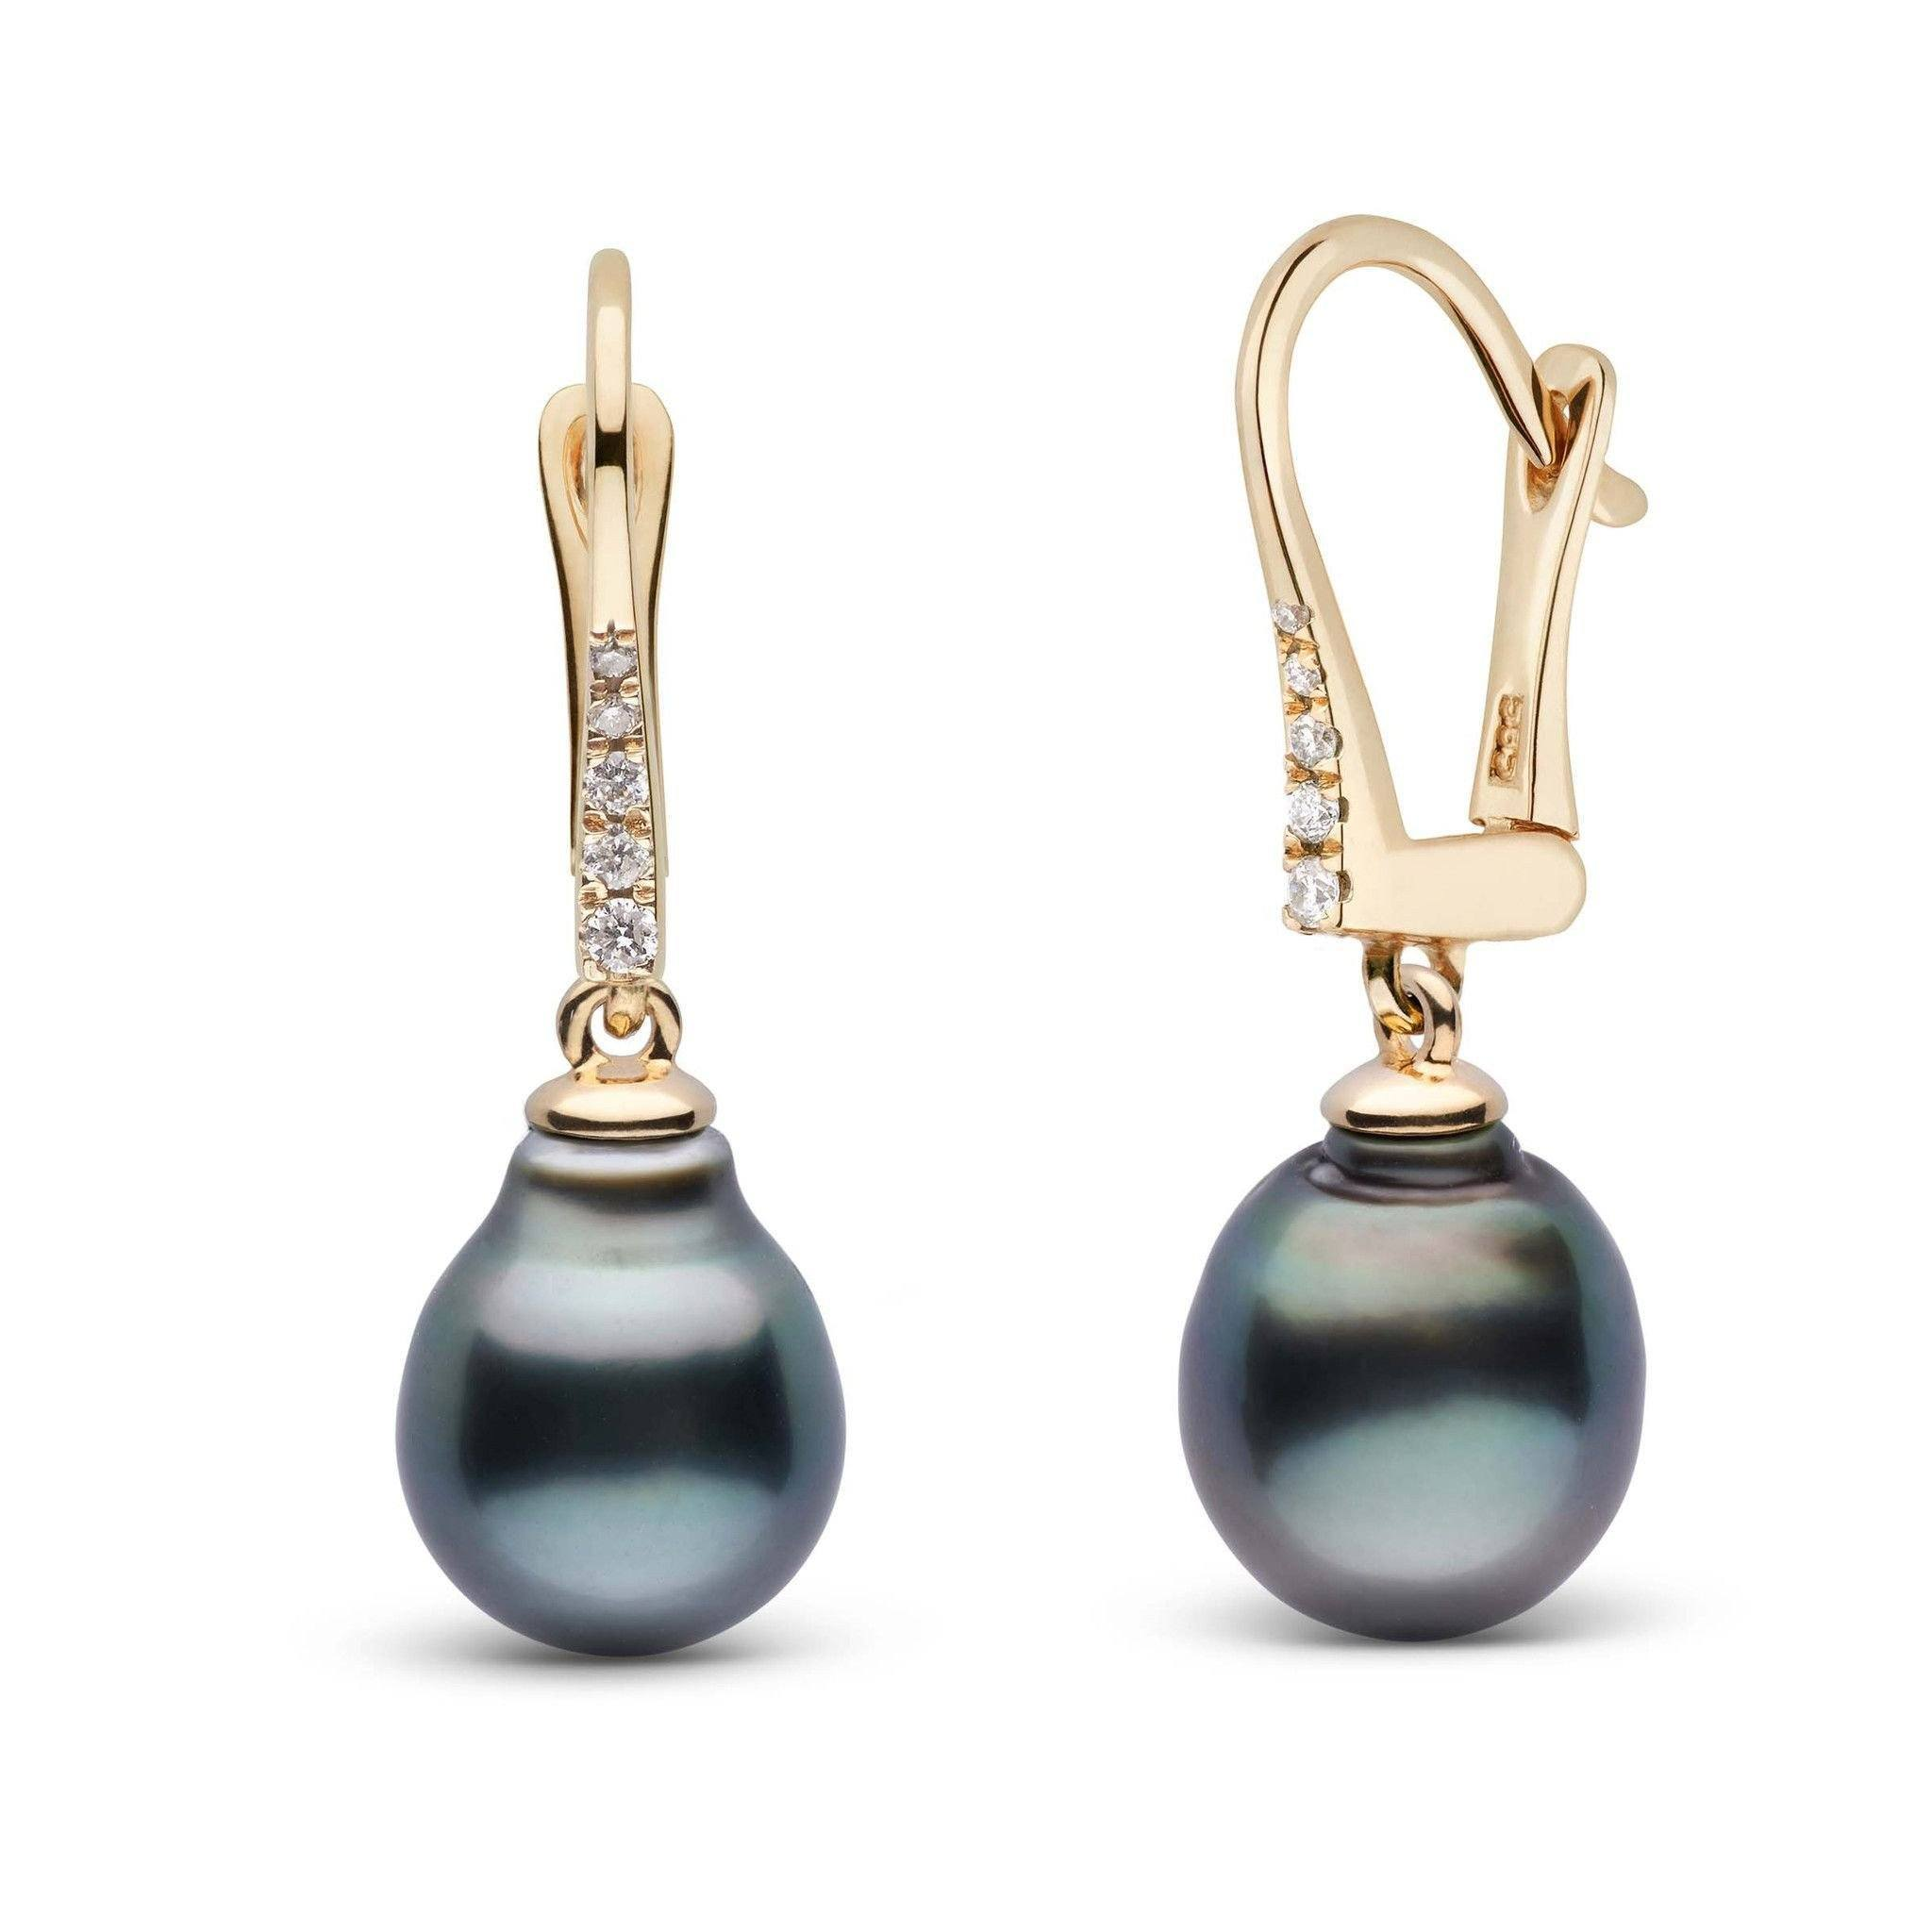 Allure Collection Tahitian Baroque 9.0-10.0 mm Pearl & Diamond Dangle Earrings